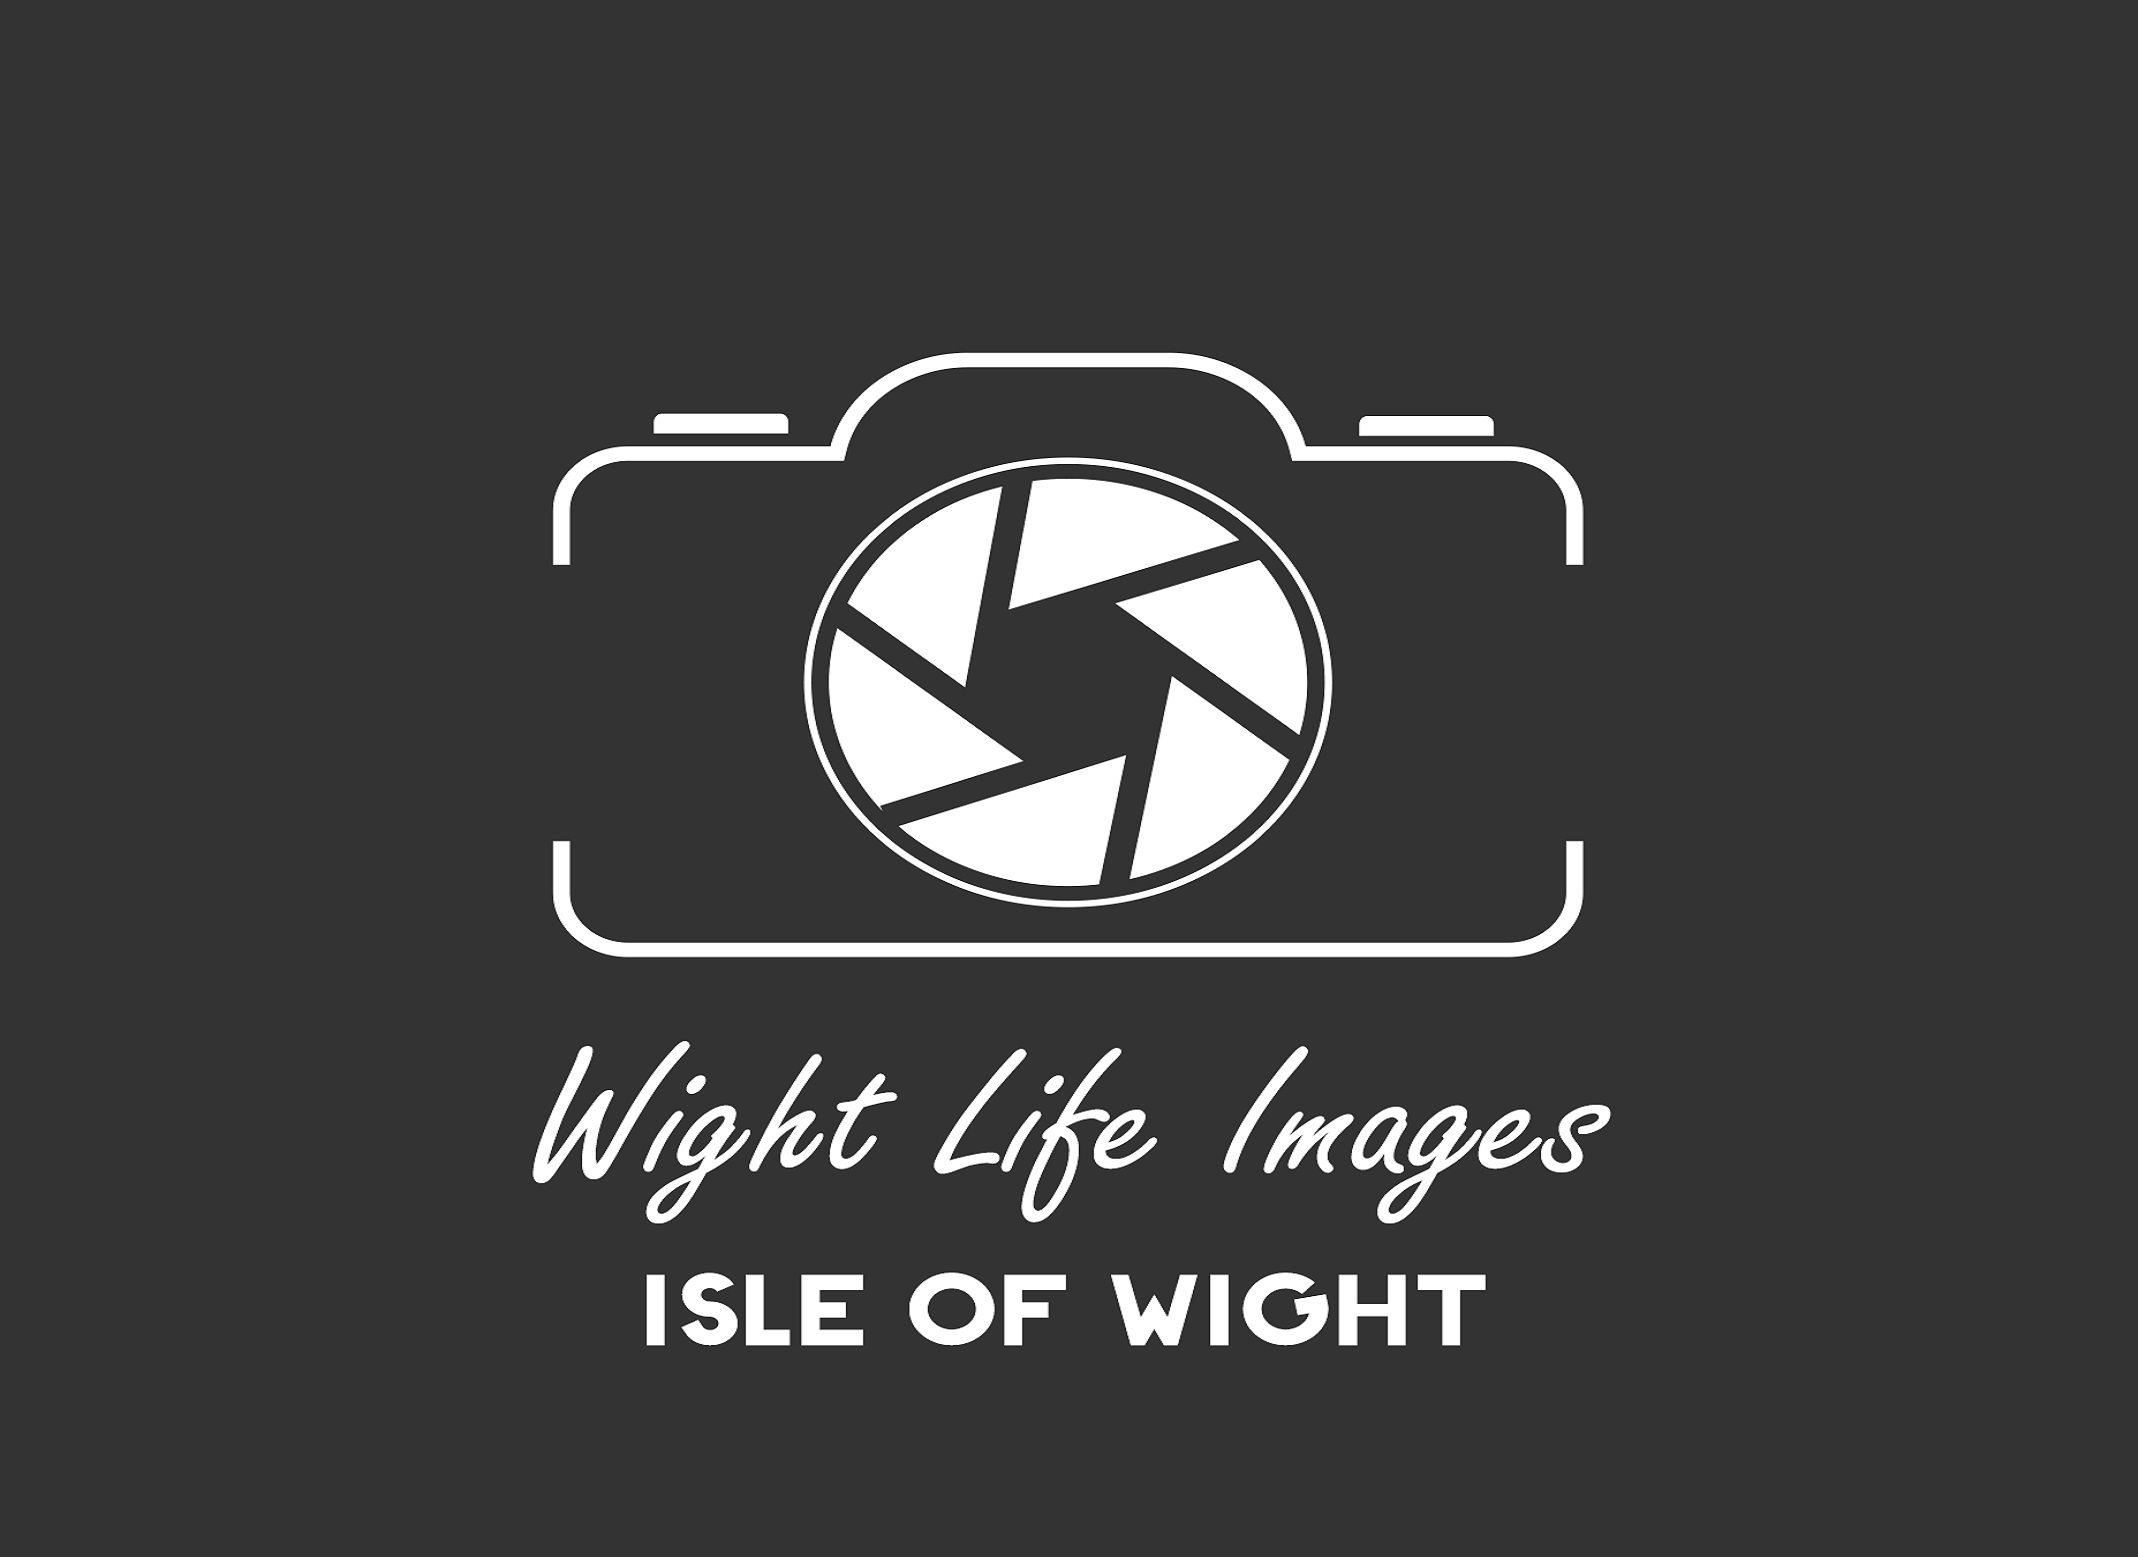 greeting cards by Wight Life Images